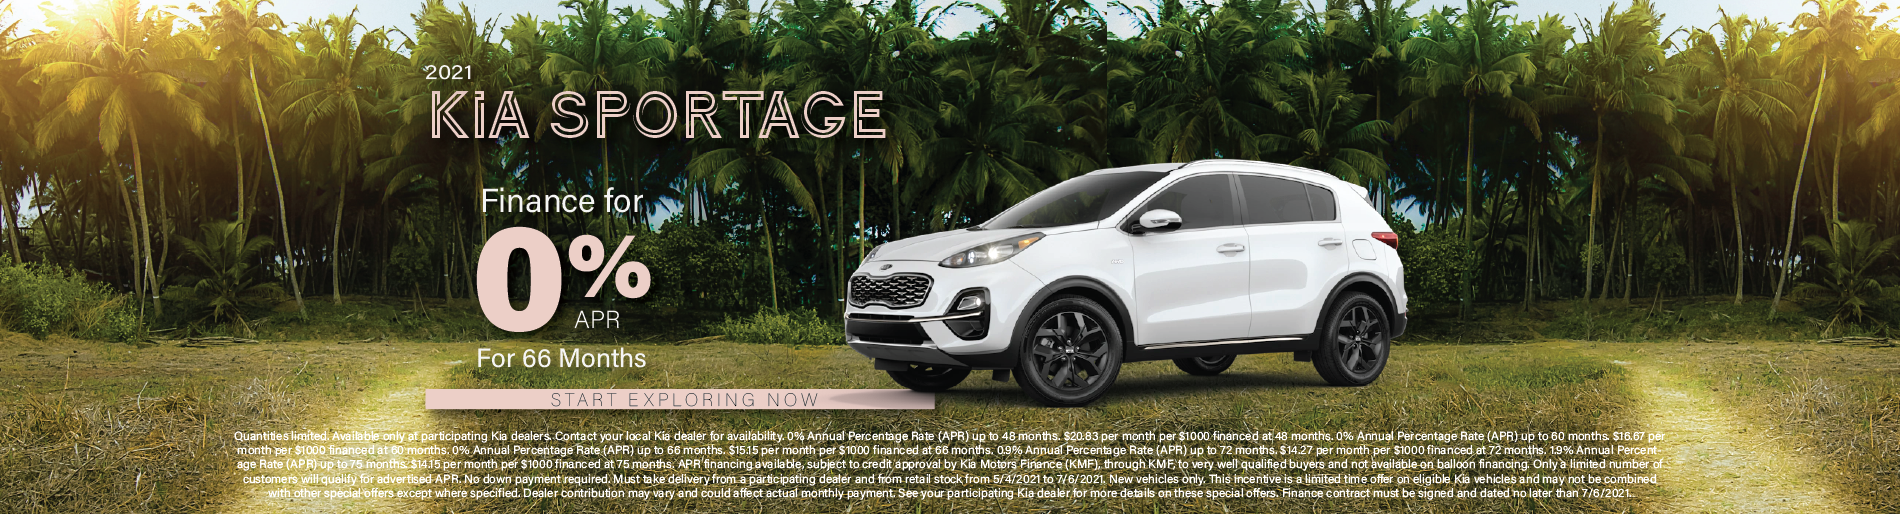 Sportage – Kia Creative May